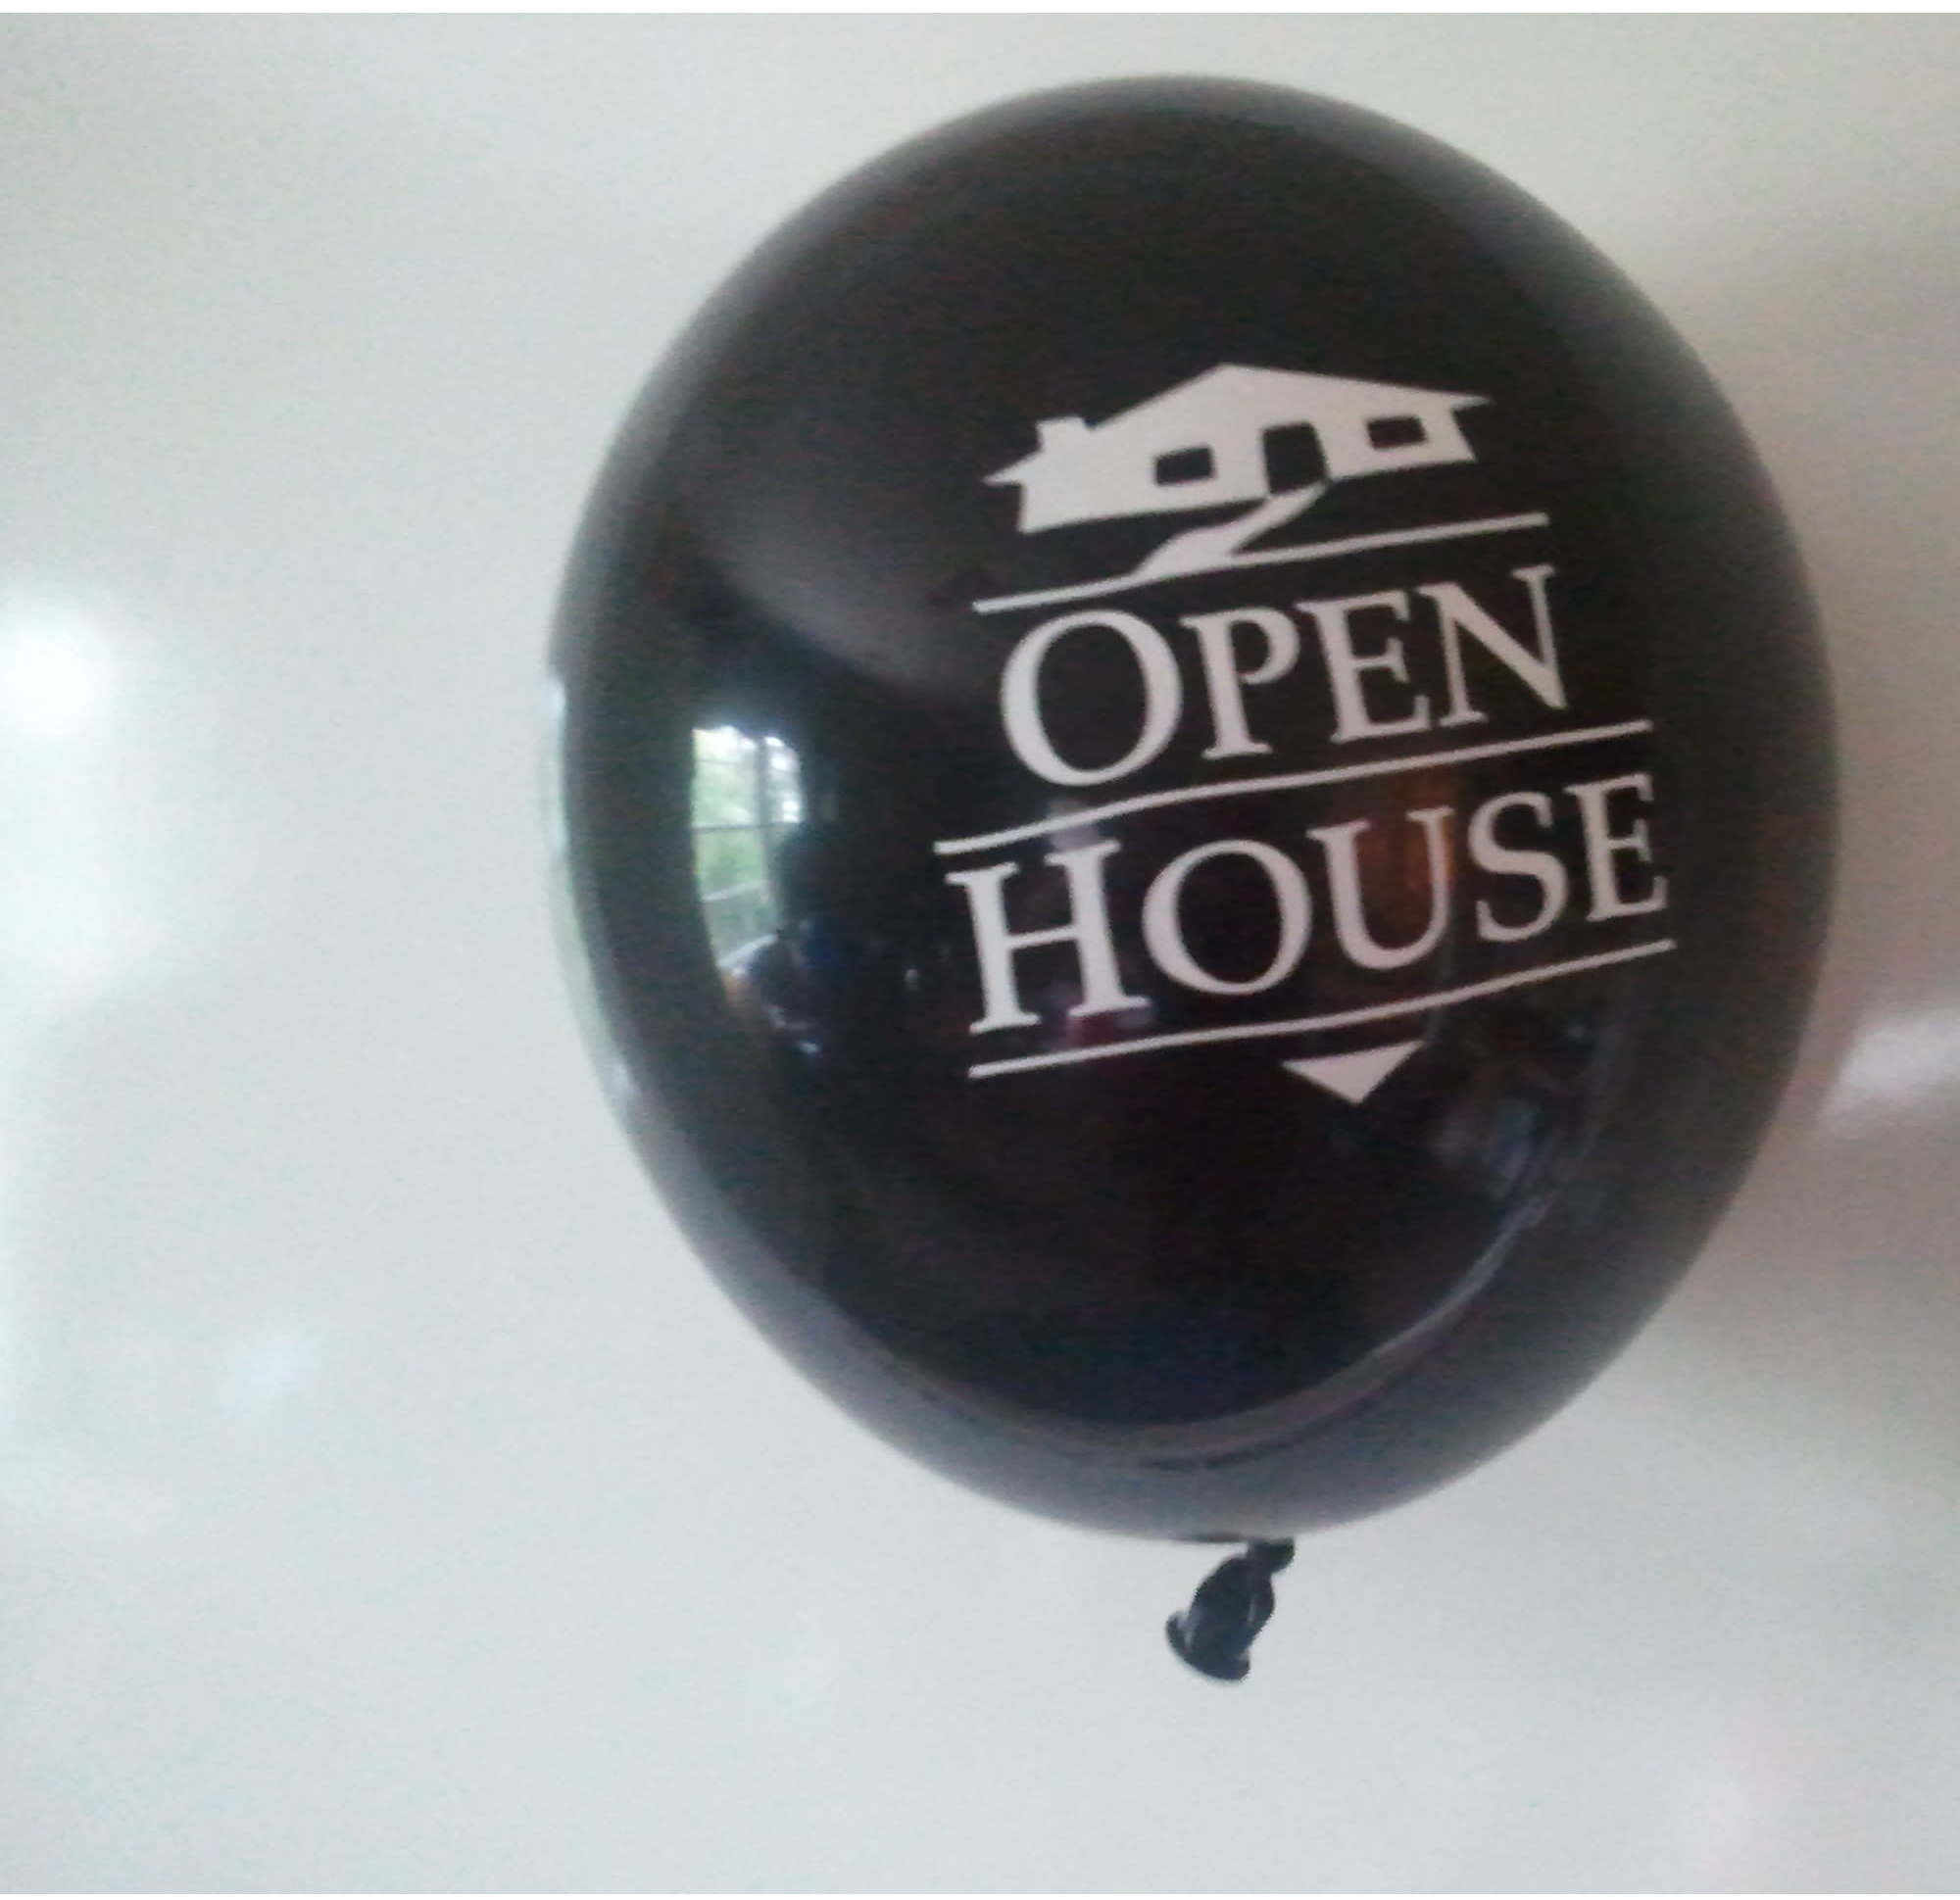 Open House Balloon